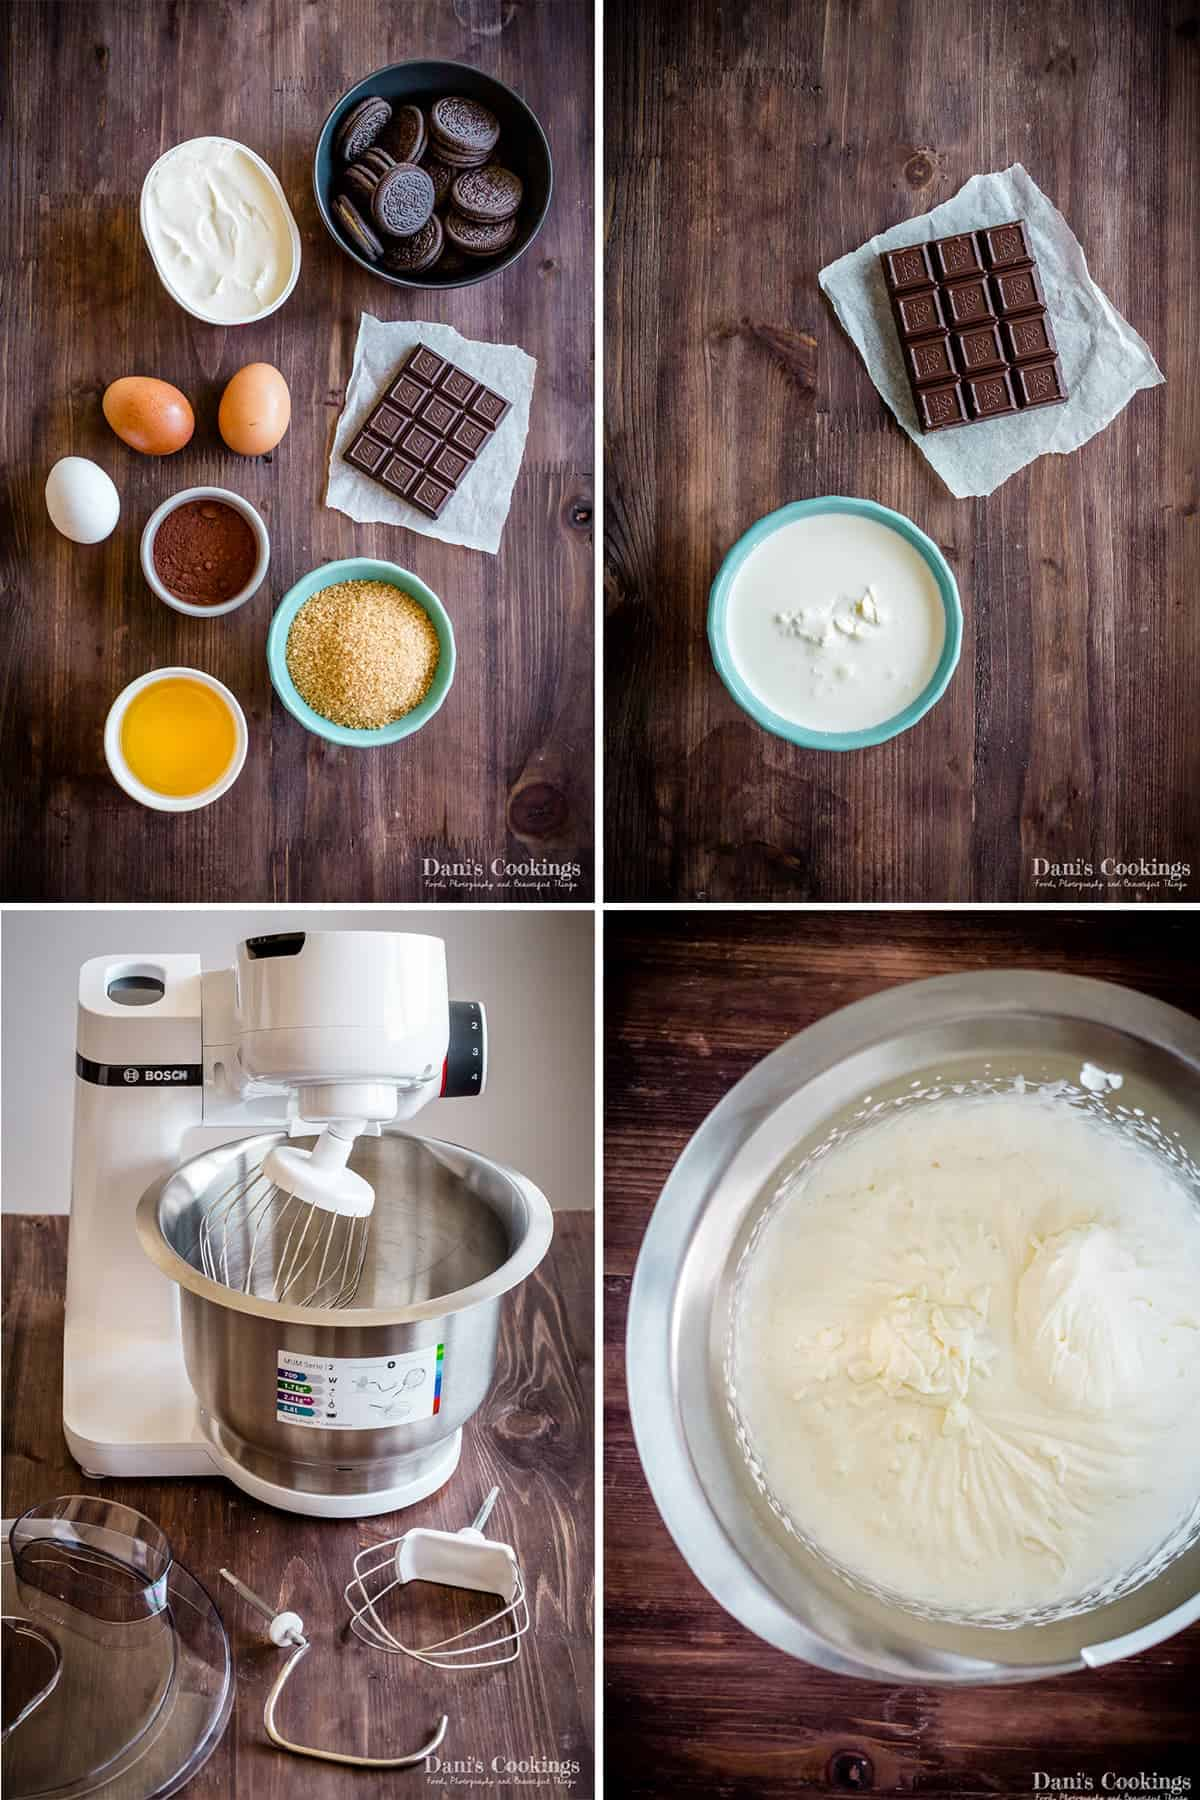 ingredients and steps for the recipe